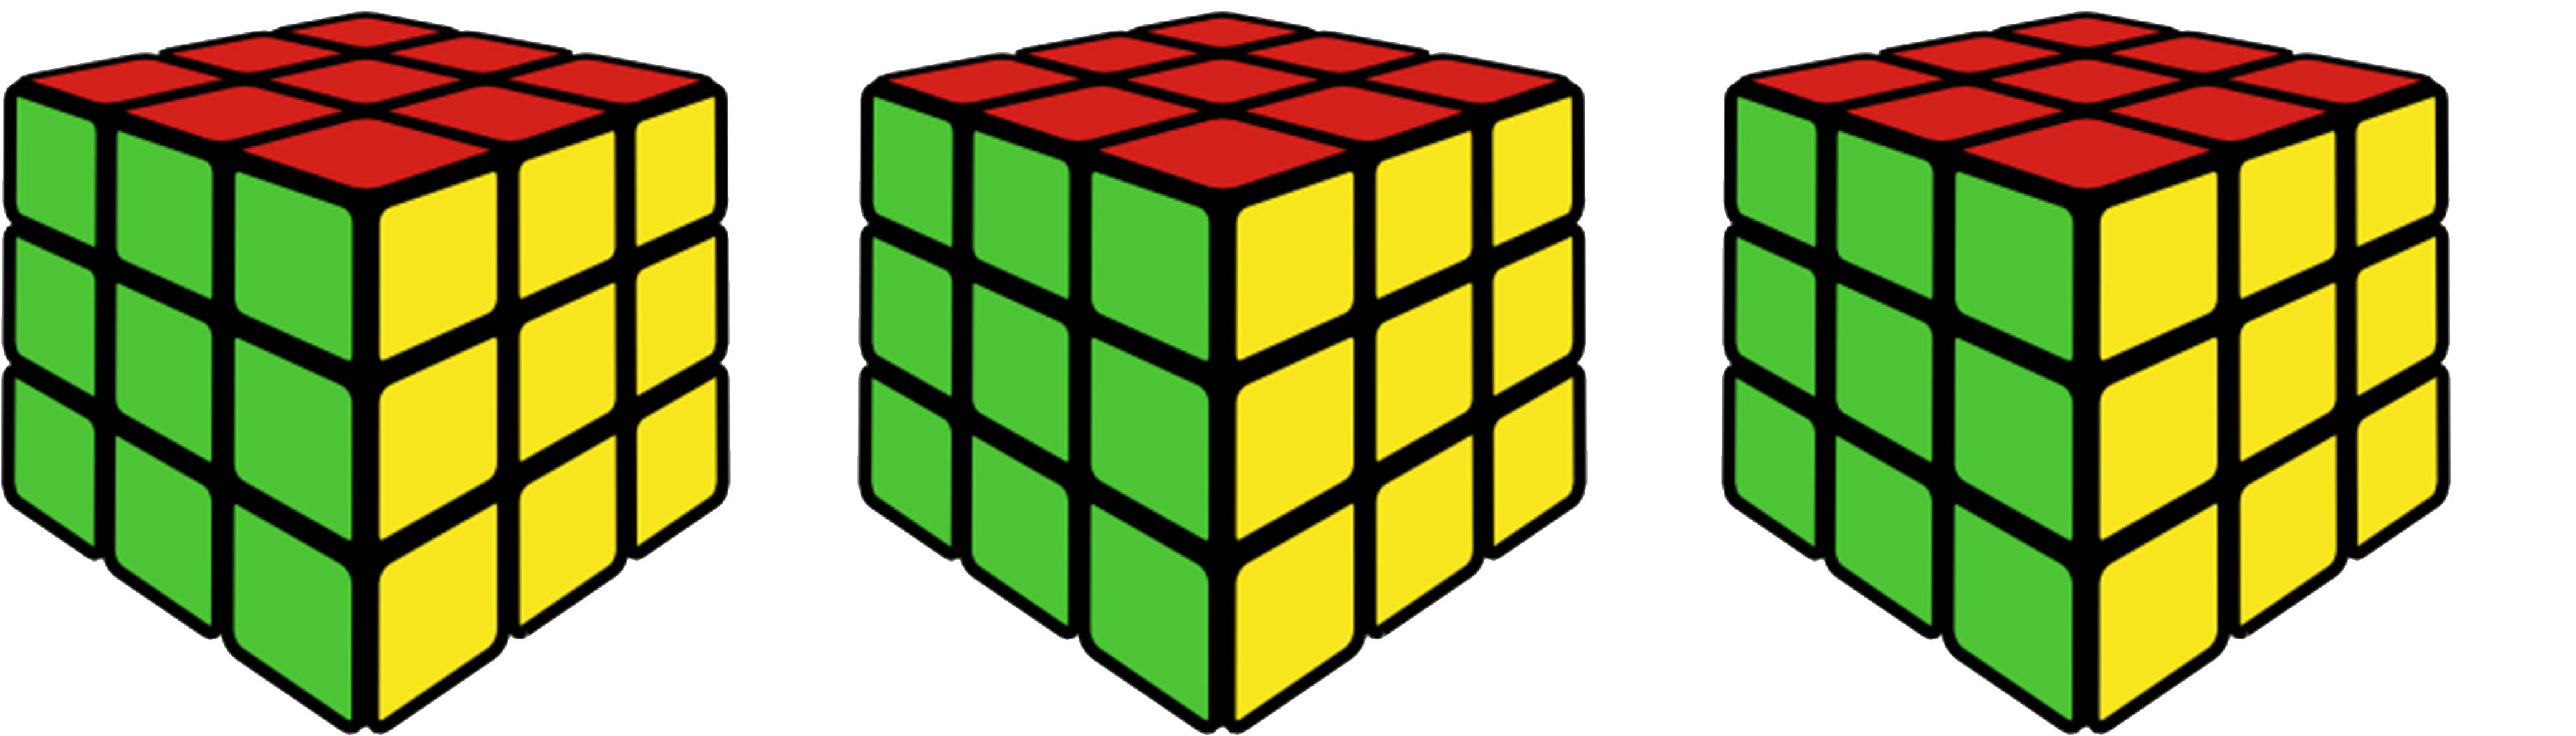 3 Rubix Cubes_copy